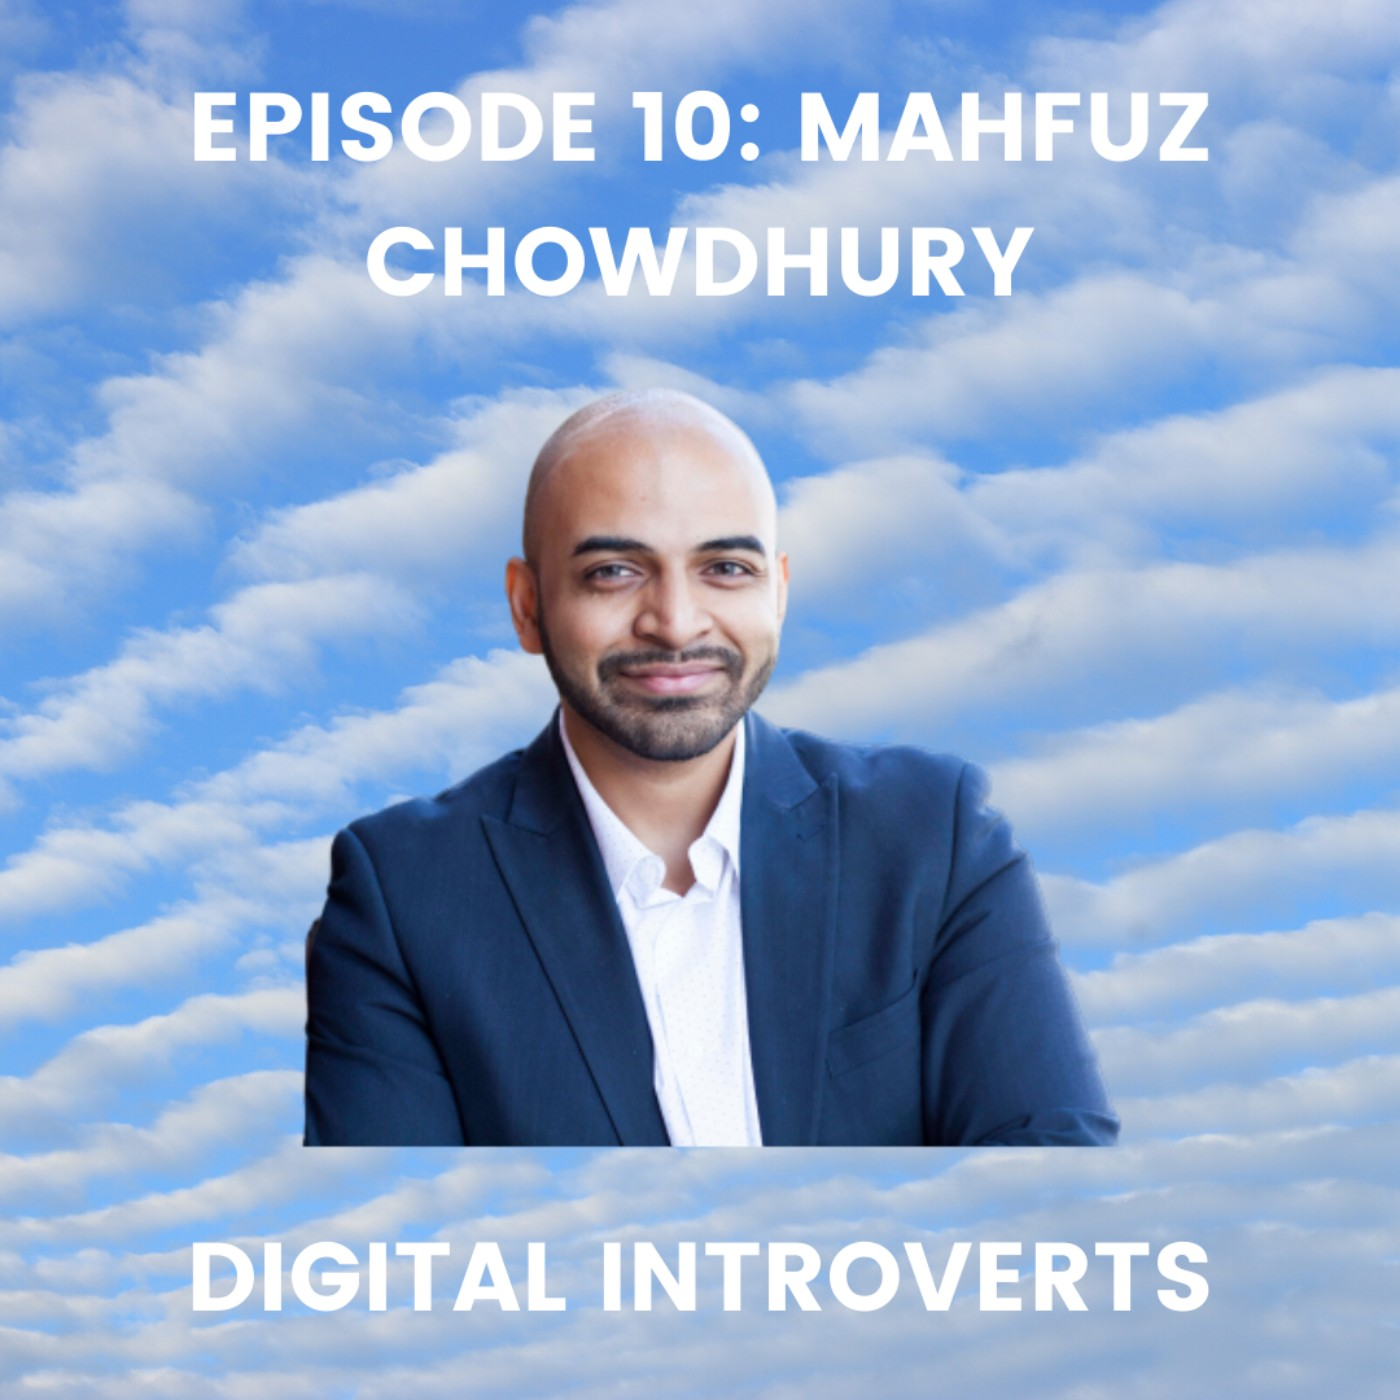 Episode 10: Building Authentic Relationships Online and Offline With Mahfuz Chowdhury